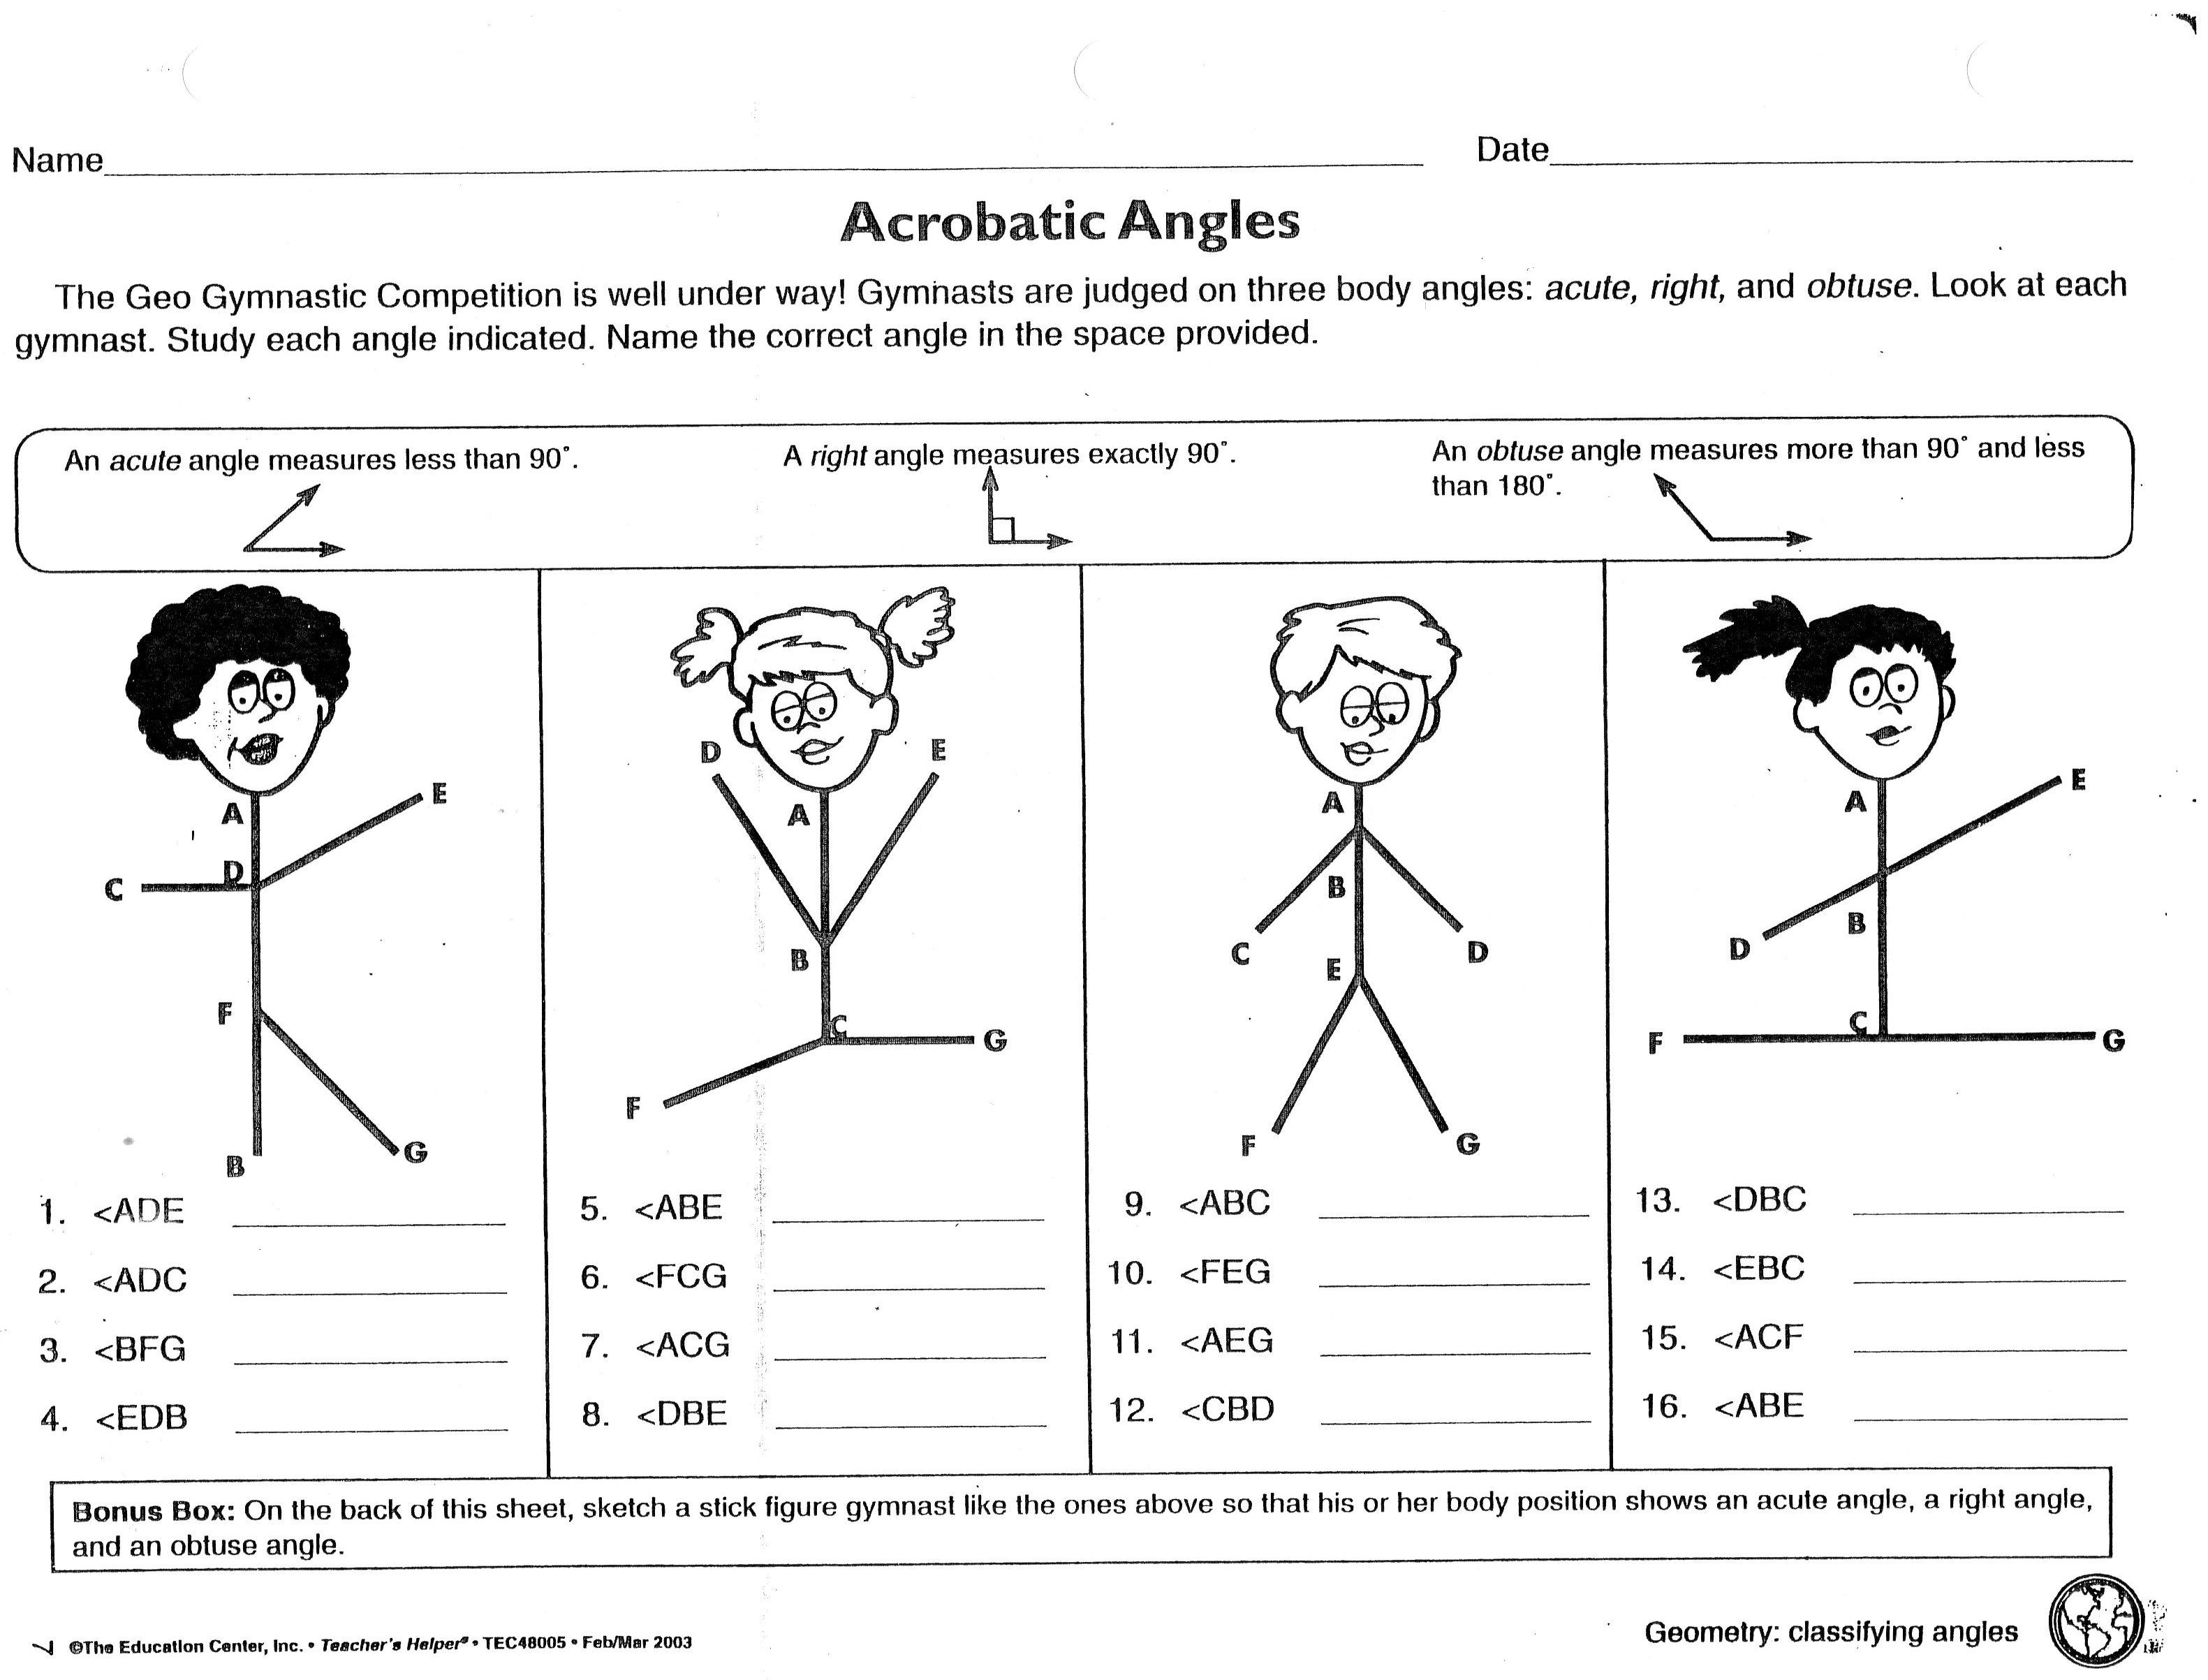 Acrobatic Angles Worksheet Obtuse Acute Right 3 162